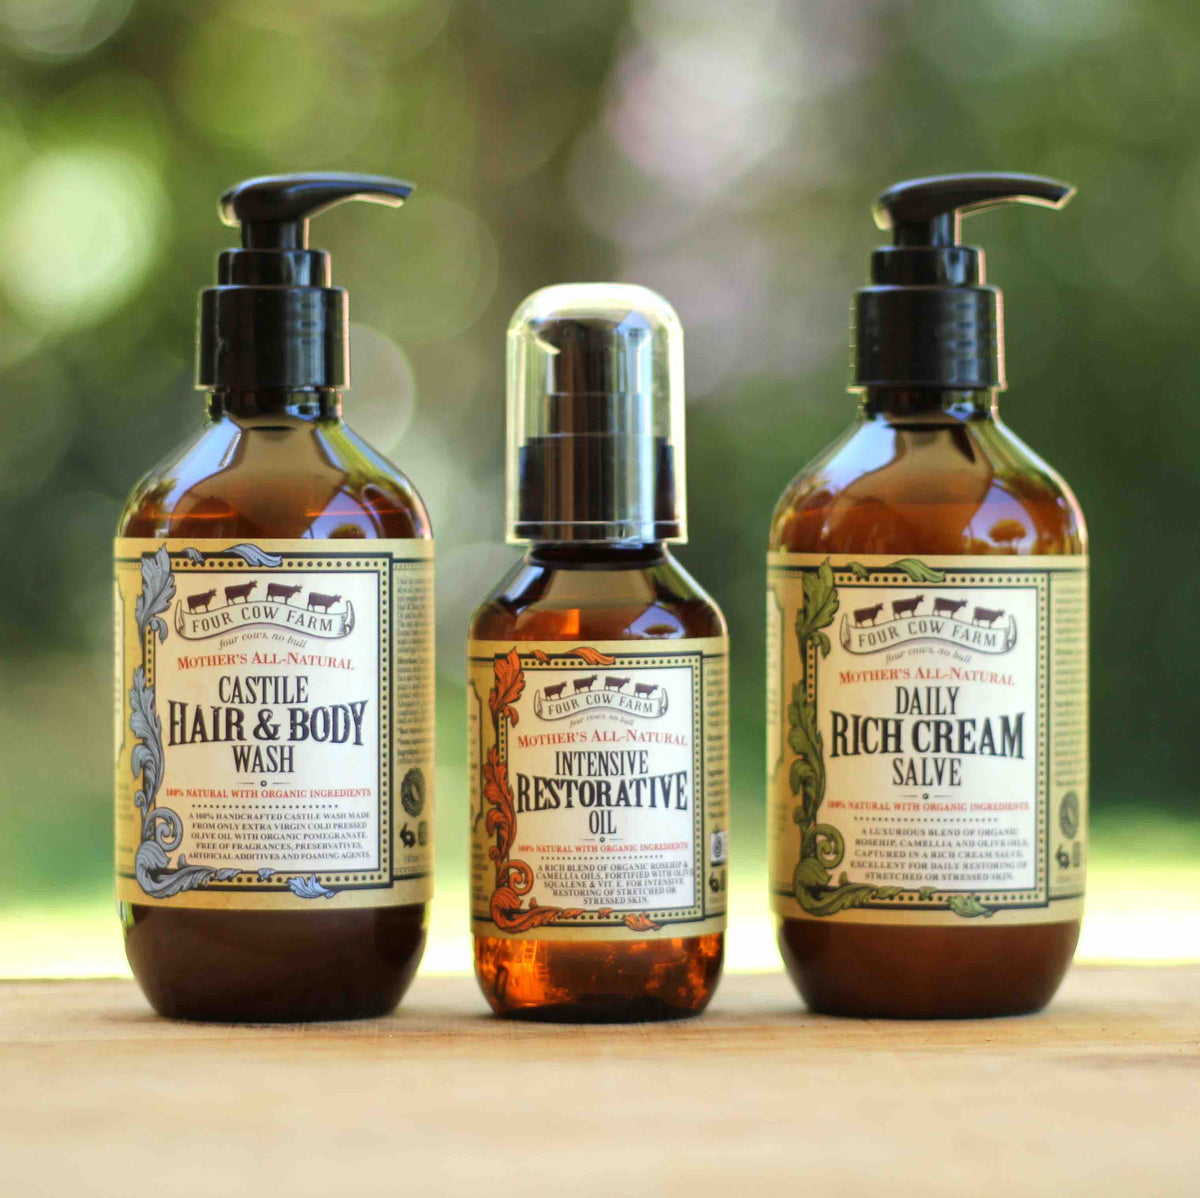 Four Cow Farm Mother's All-Natural Range